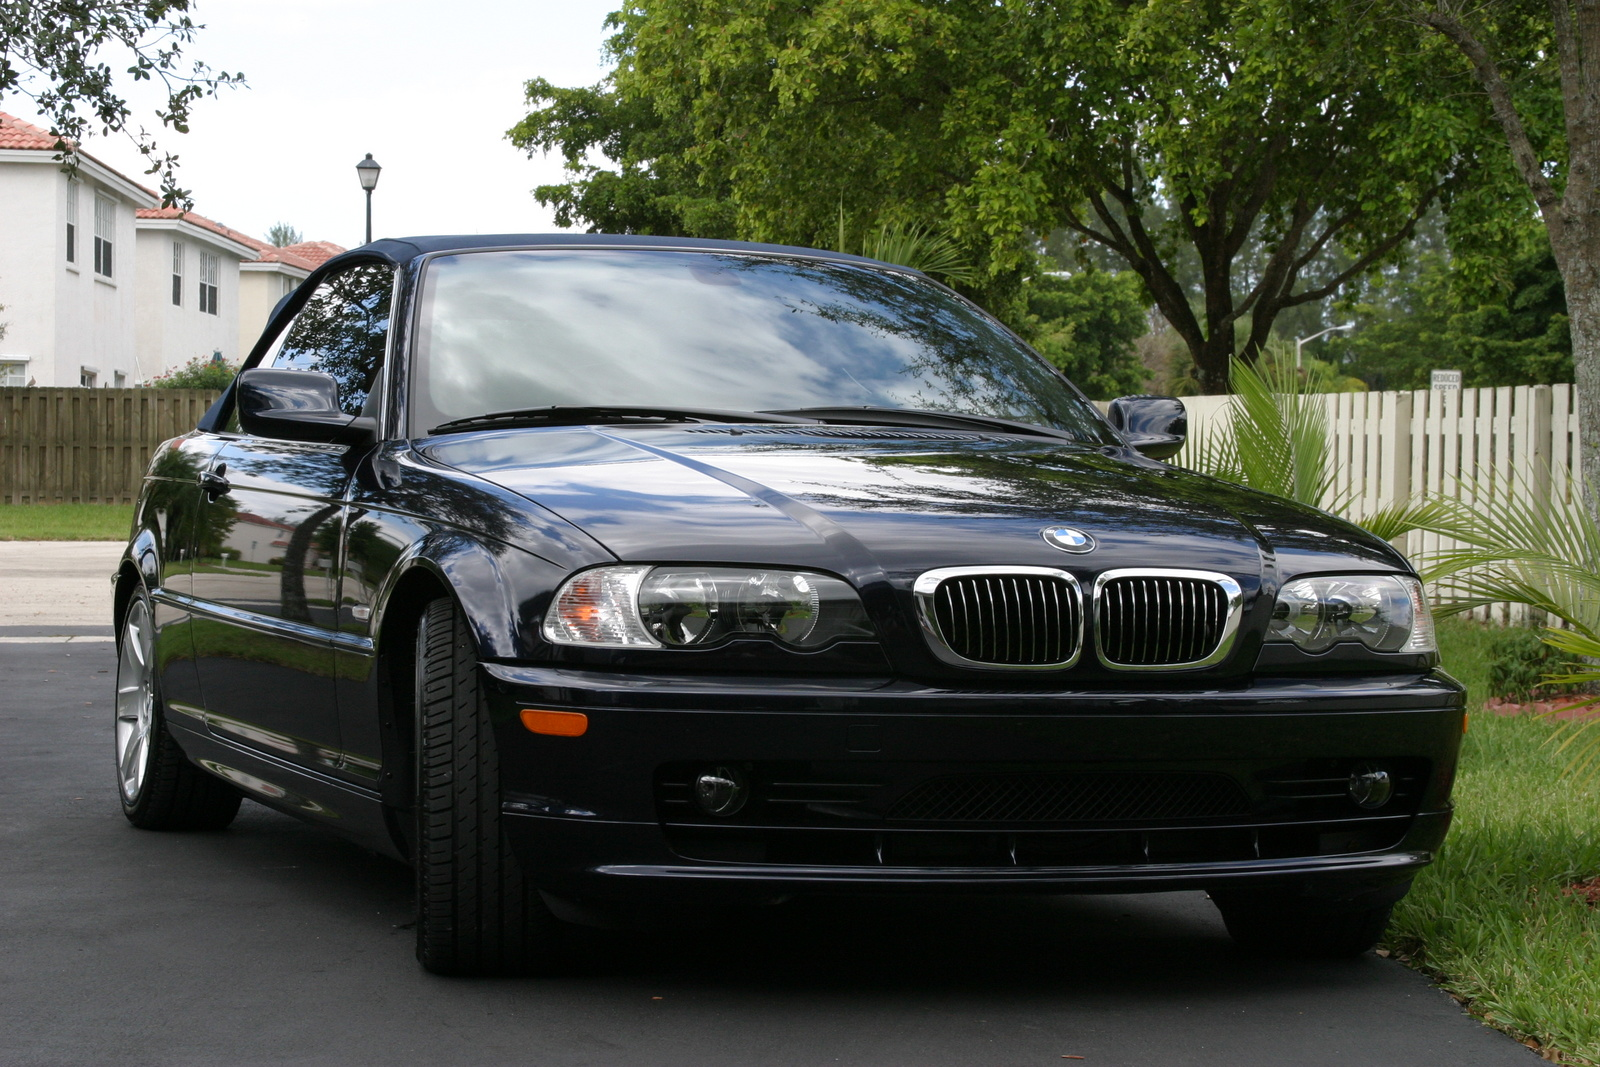 BMW 3 series 325Ci 2003 photo - 1